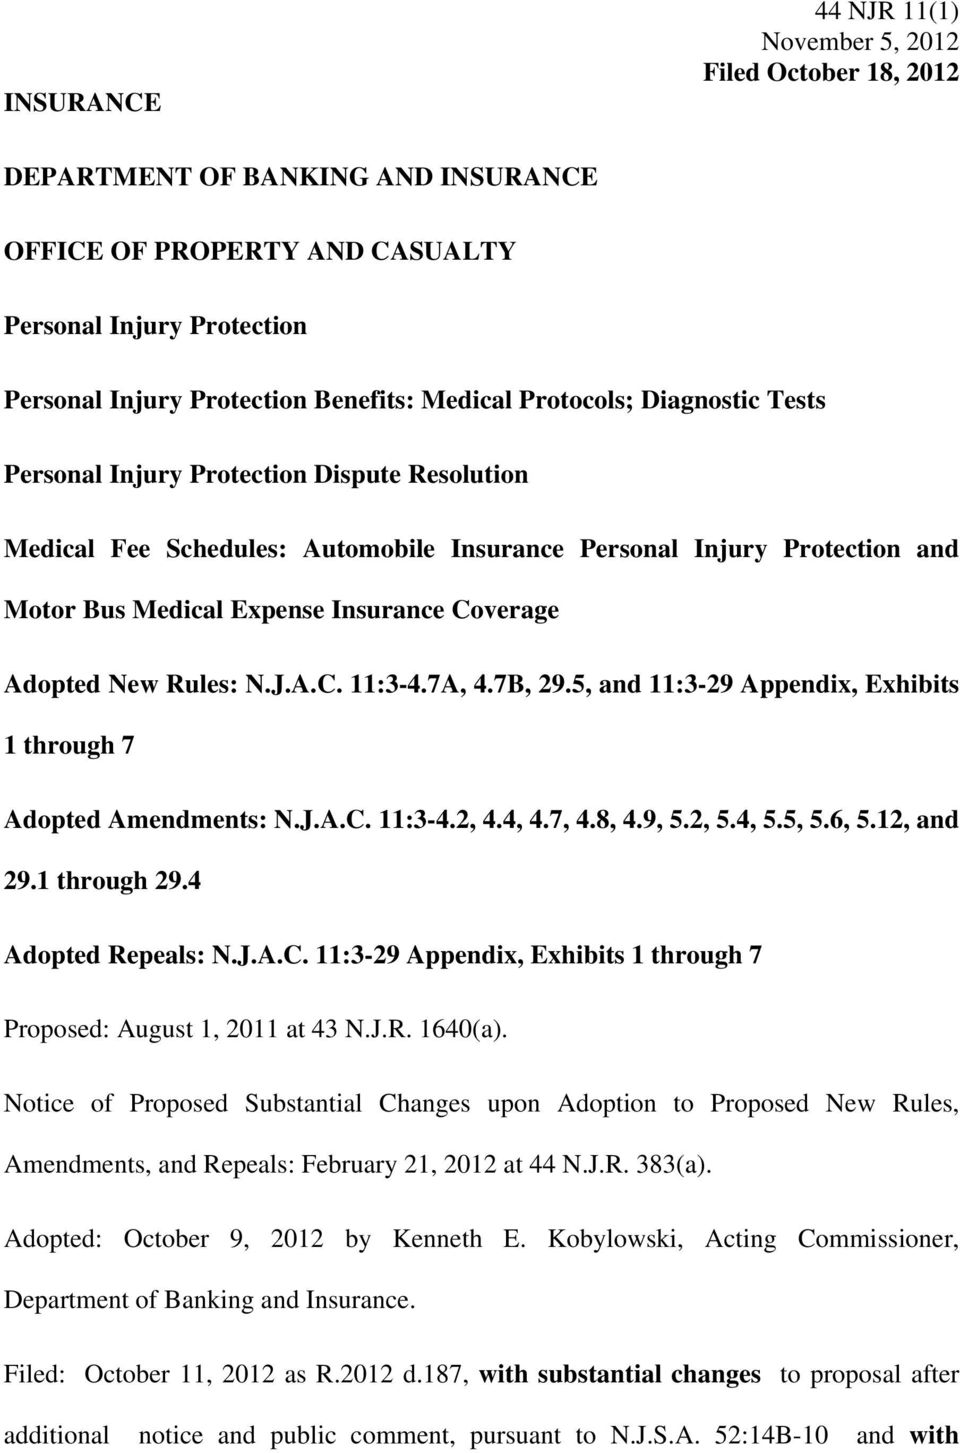 Coverage Adopted New Rules: N.J.A.C. 11:3-4.7A, 4.7B, 29.5, and 11:3-29 Appendix, Exhibits 1 through 7 Adopted Amendments: N.J.A.C. 11:3-4.2, 4.4, 4.7, 4.8, 4.9, 5.2, 5.4, 5.5, 5.6, 5.12, and 29.